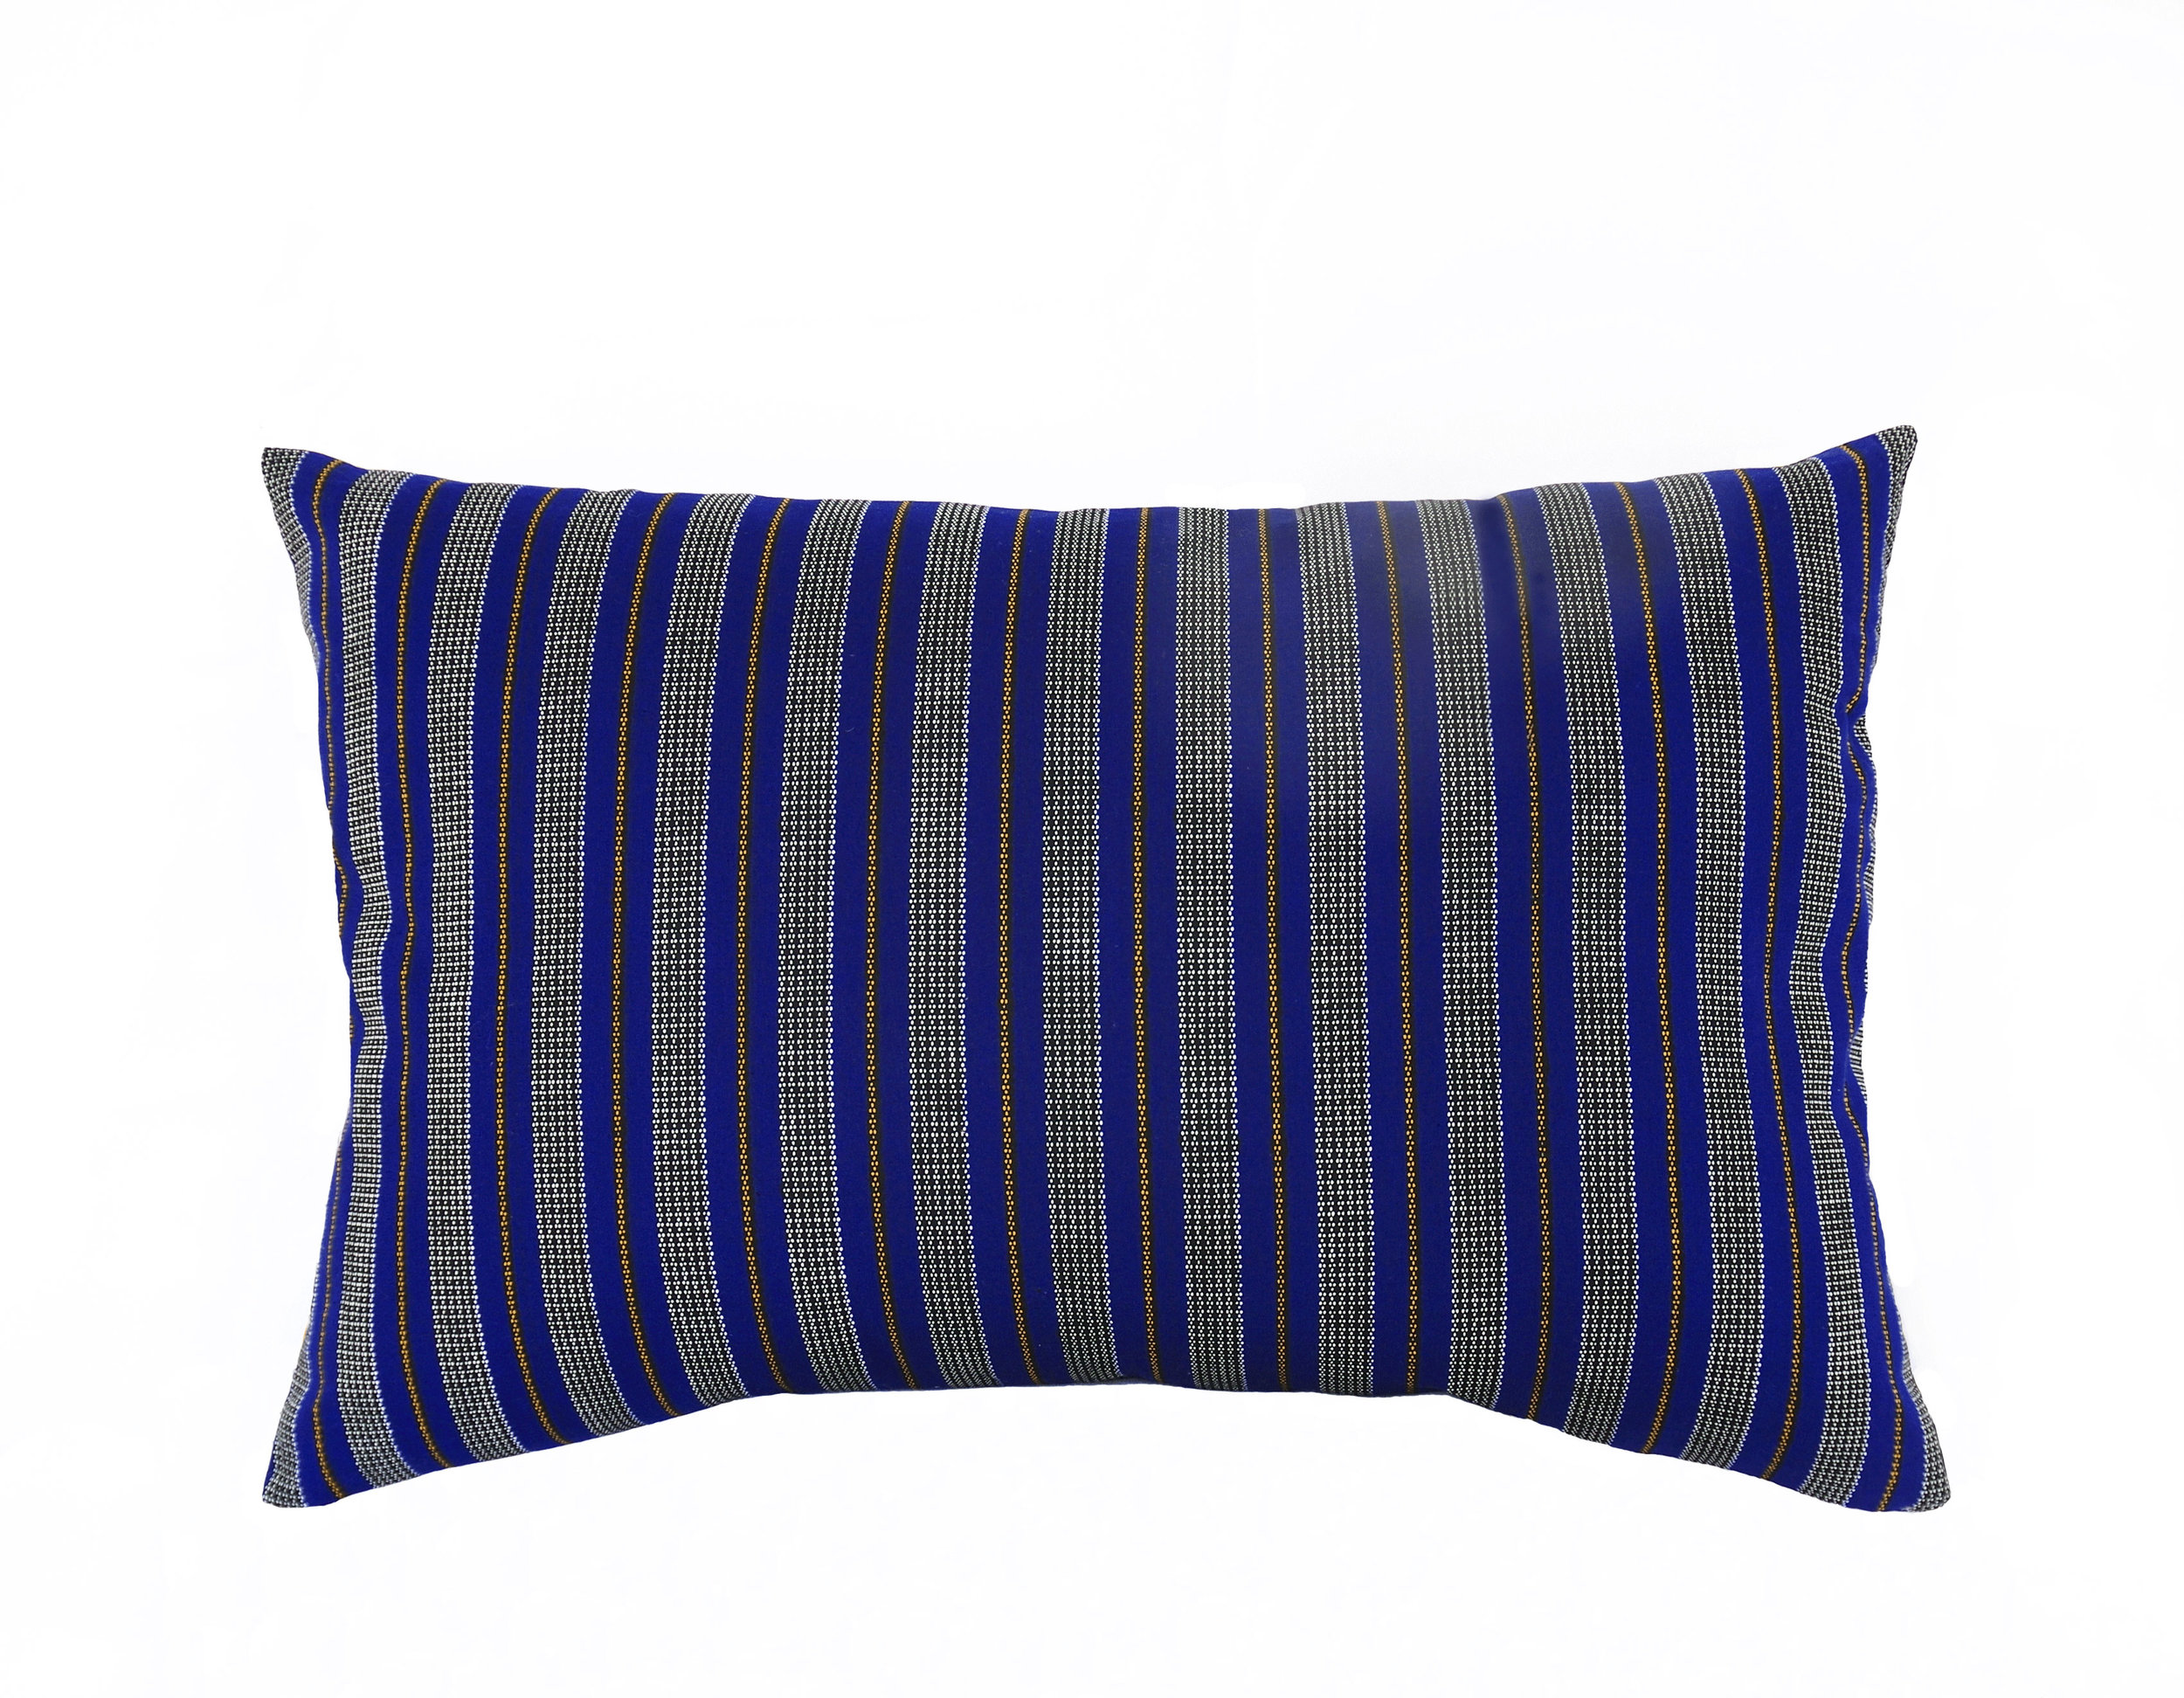 coussin-adjamee-ligne-bleue-rectangle.jpg